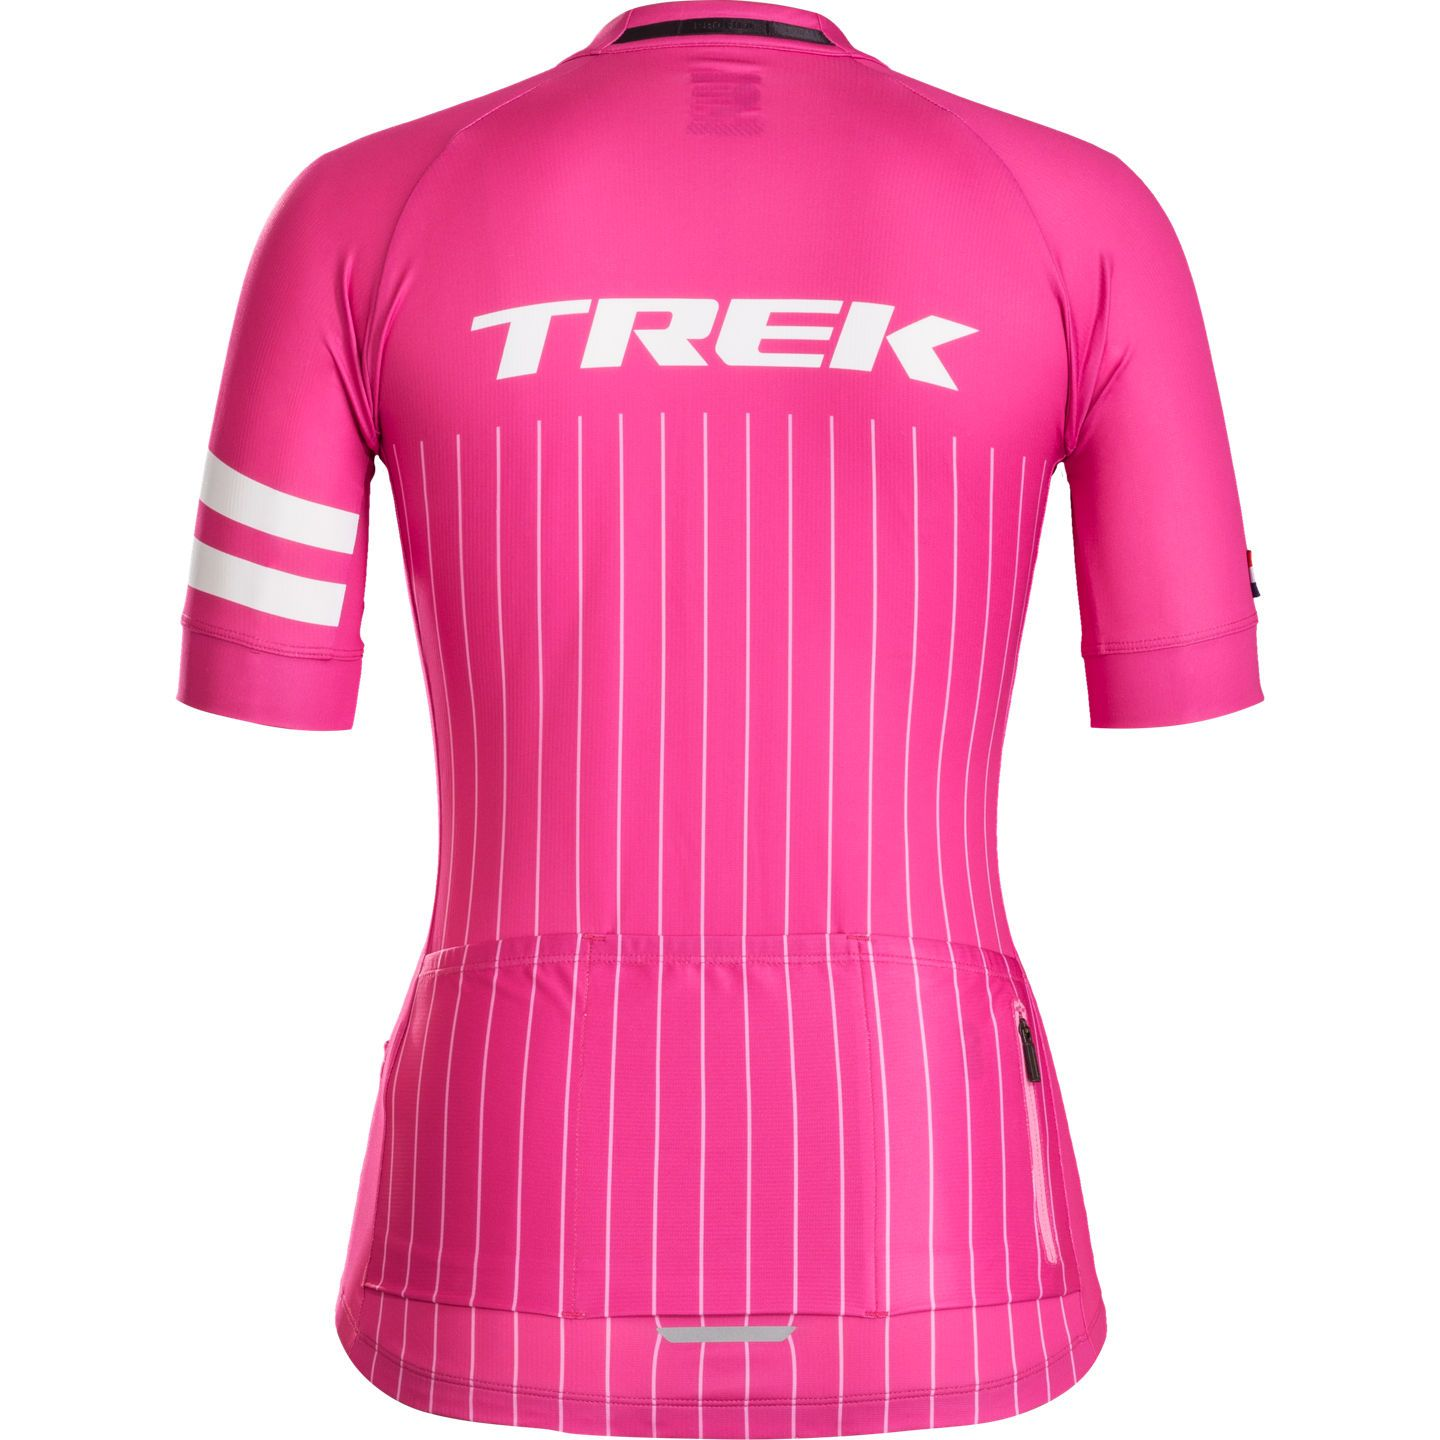 Previous. Bontrager ANARA LTD womens short sleeve cycling jersey pink ·  Bontrager ANARA LTD womens short sleeve cycling jersey pink c91437147